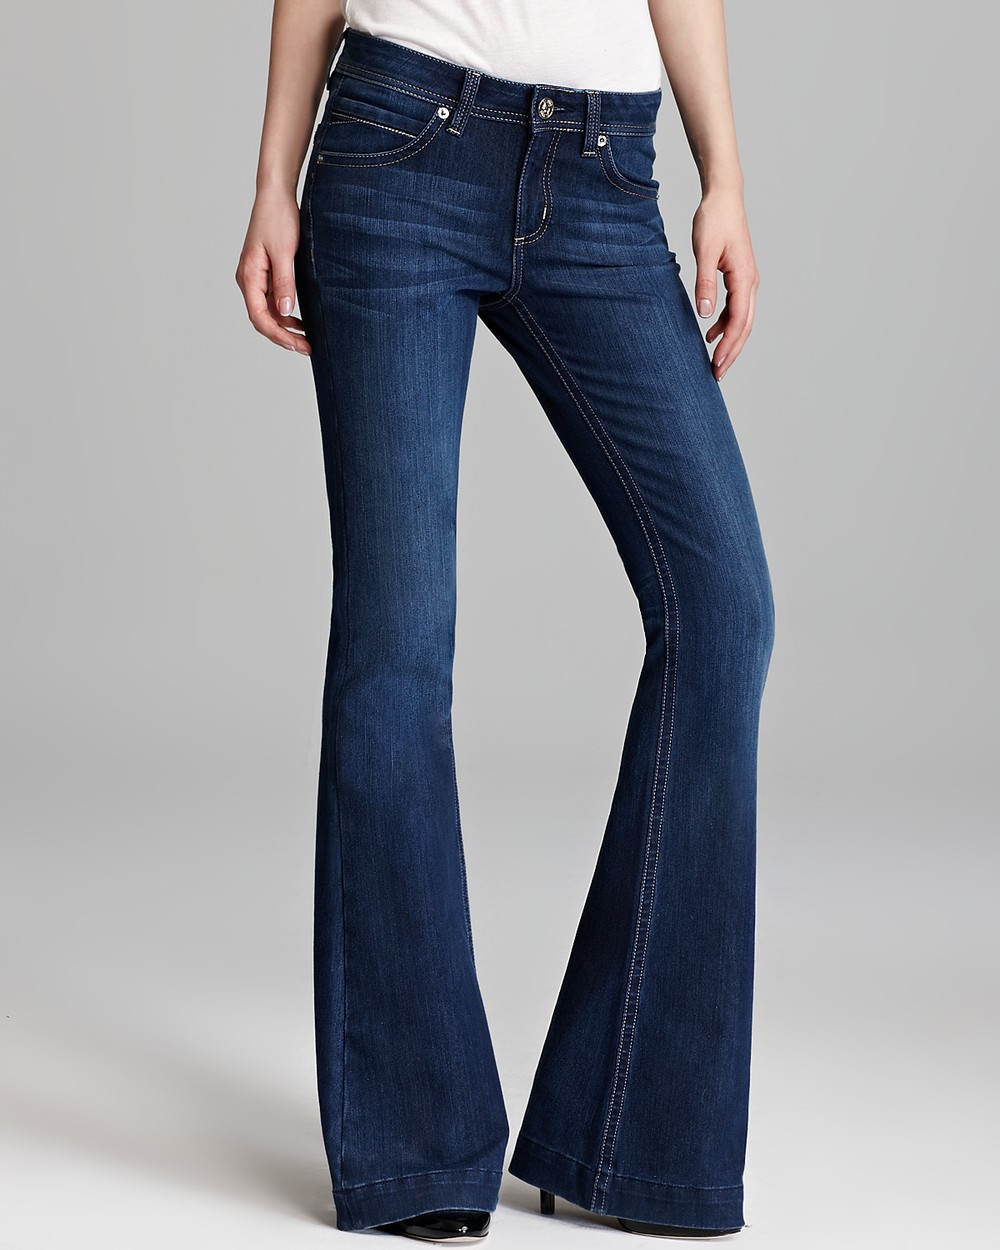 DL 1961 JEANS Joy Mid Rise Kick Flare In Nirvana $168